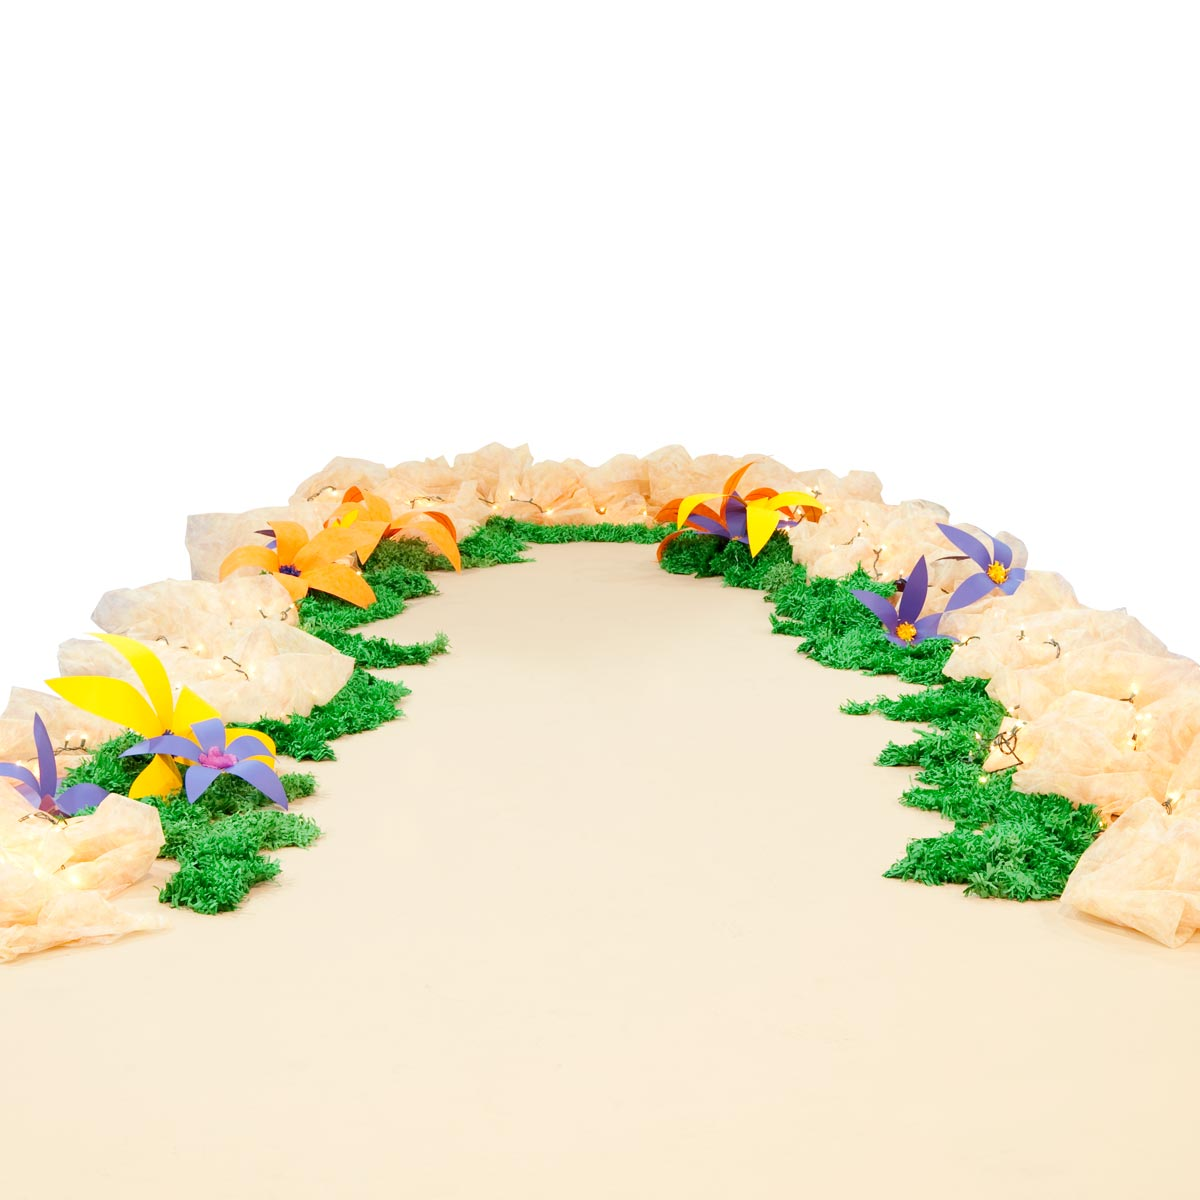 Island Fantasy Flora and Path Kit